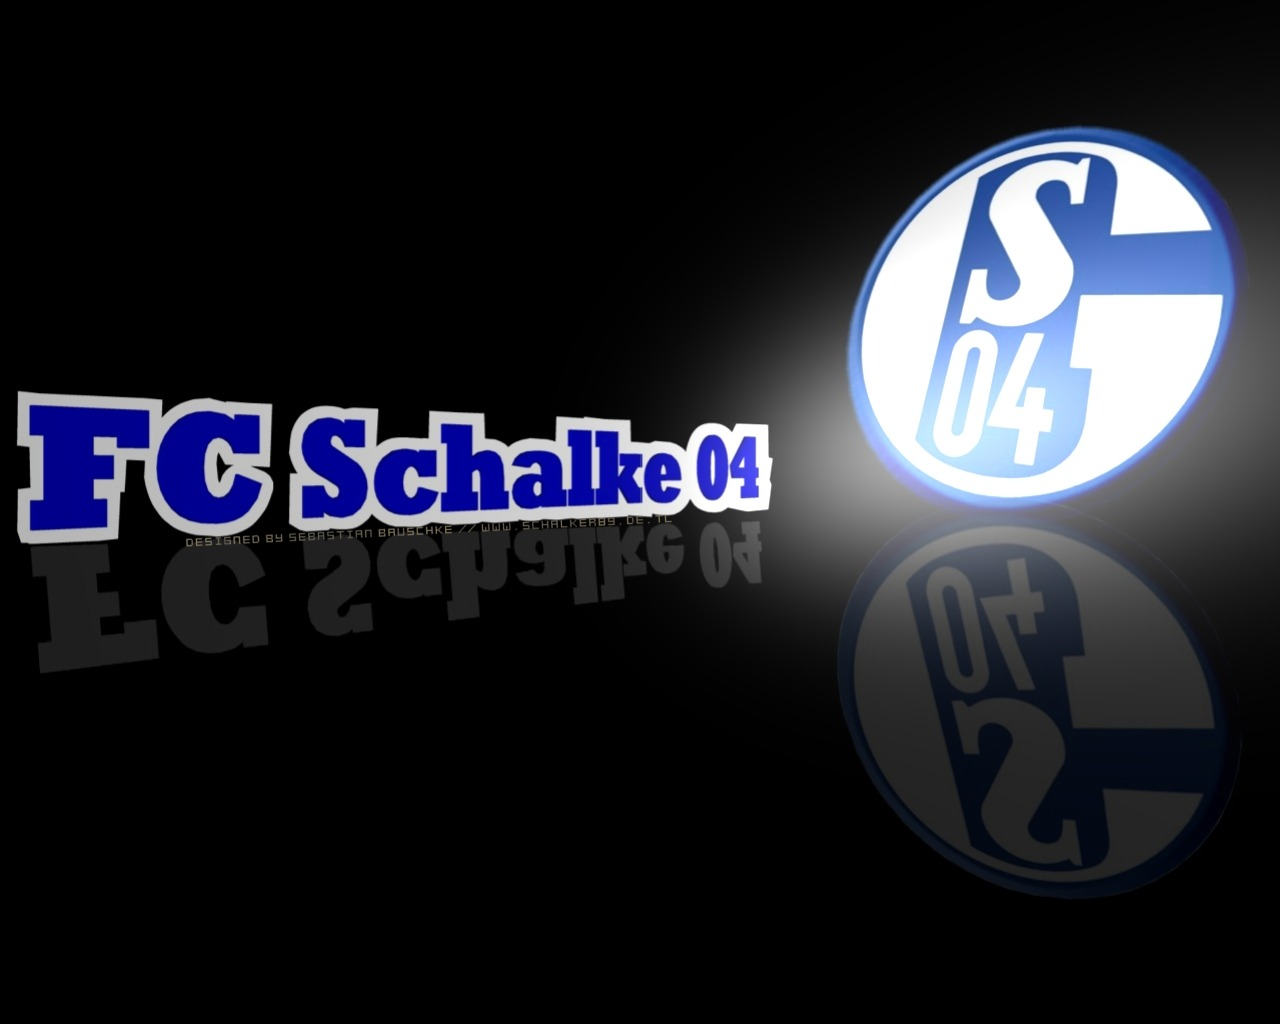 mandy s homepage fc schalke 04. Black Bedroom Furniture Sets. Home Design Ideas